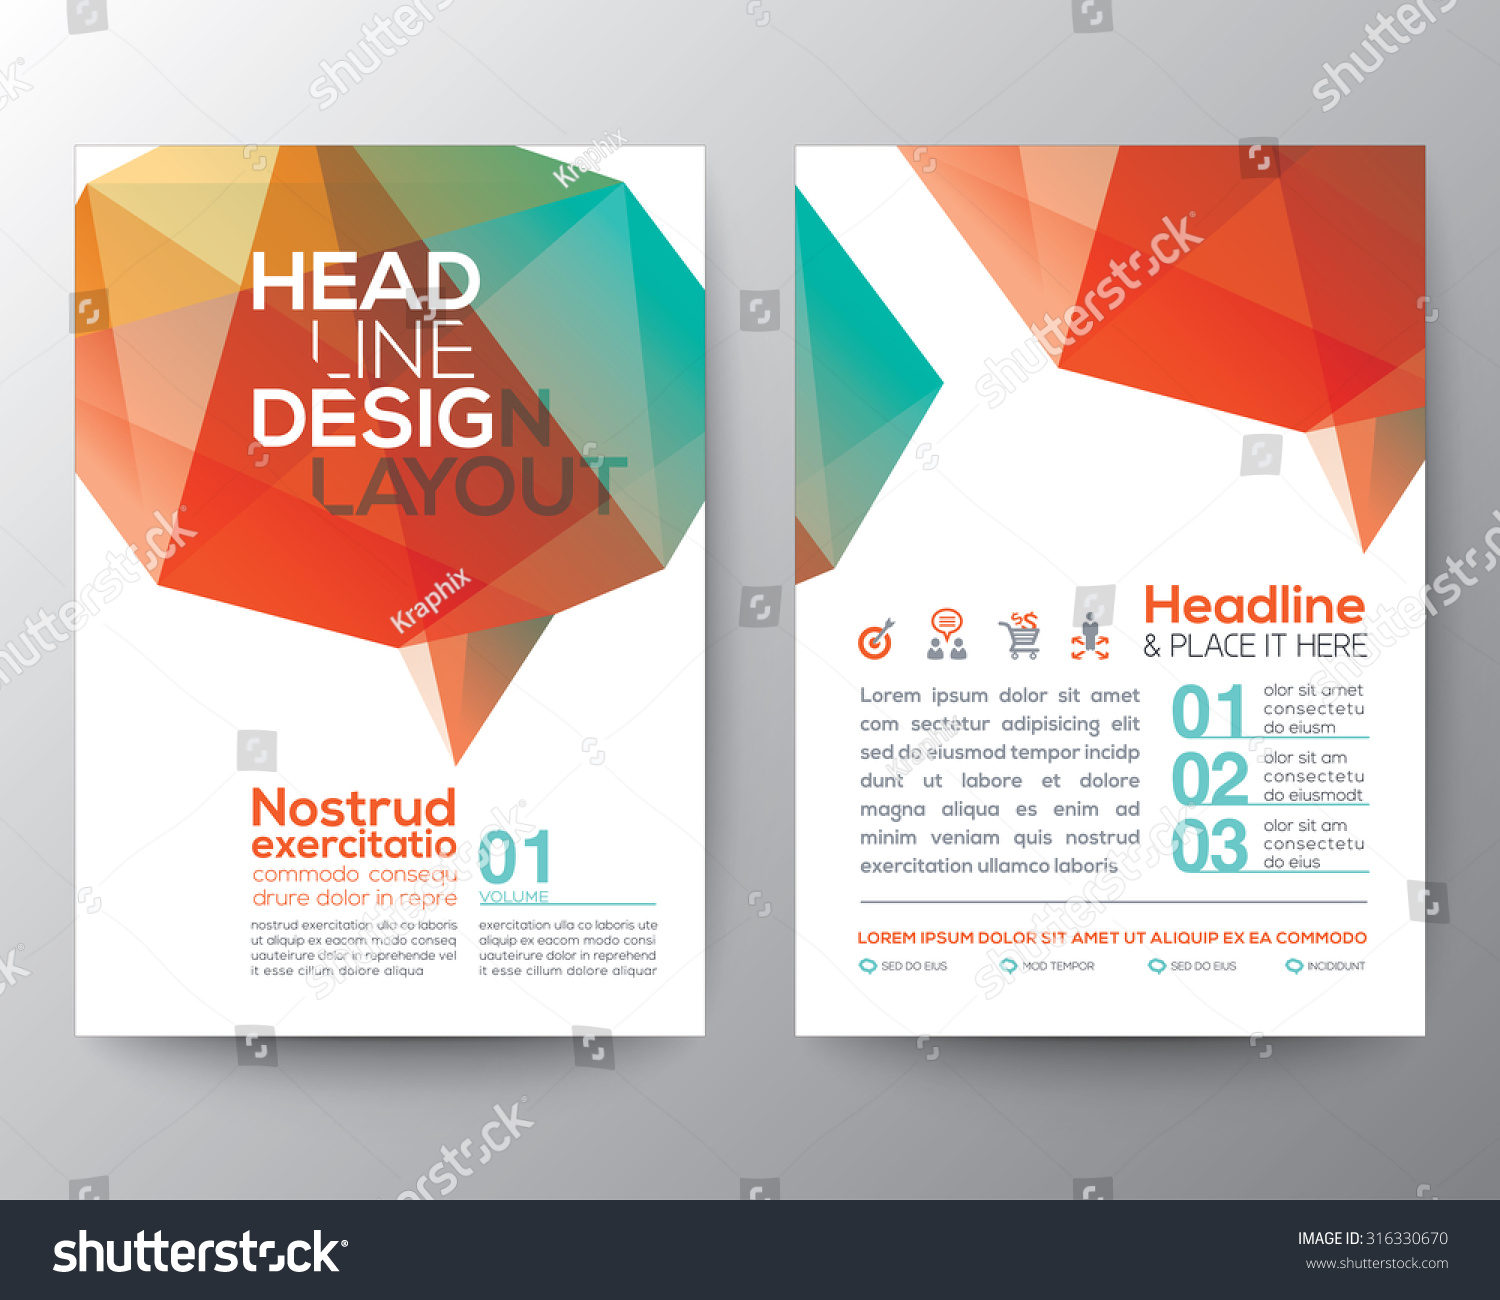 Poster design layout - Abstract Poster Brochure Flyer Design Layout Vector Template In A4 Size With Brain Shape Low Polygon